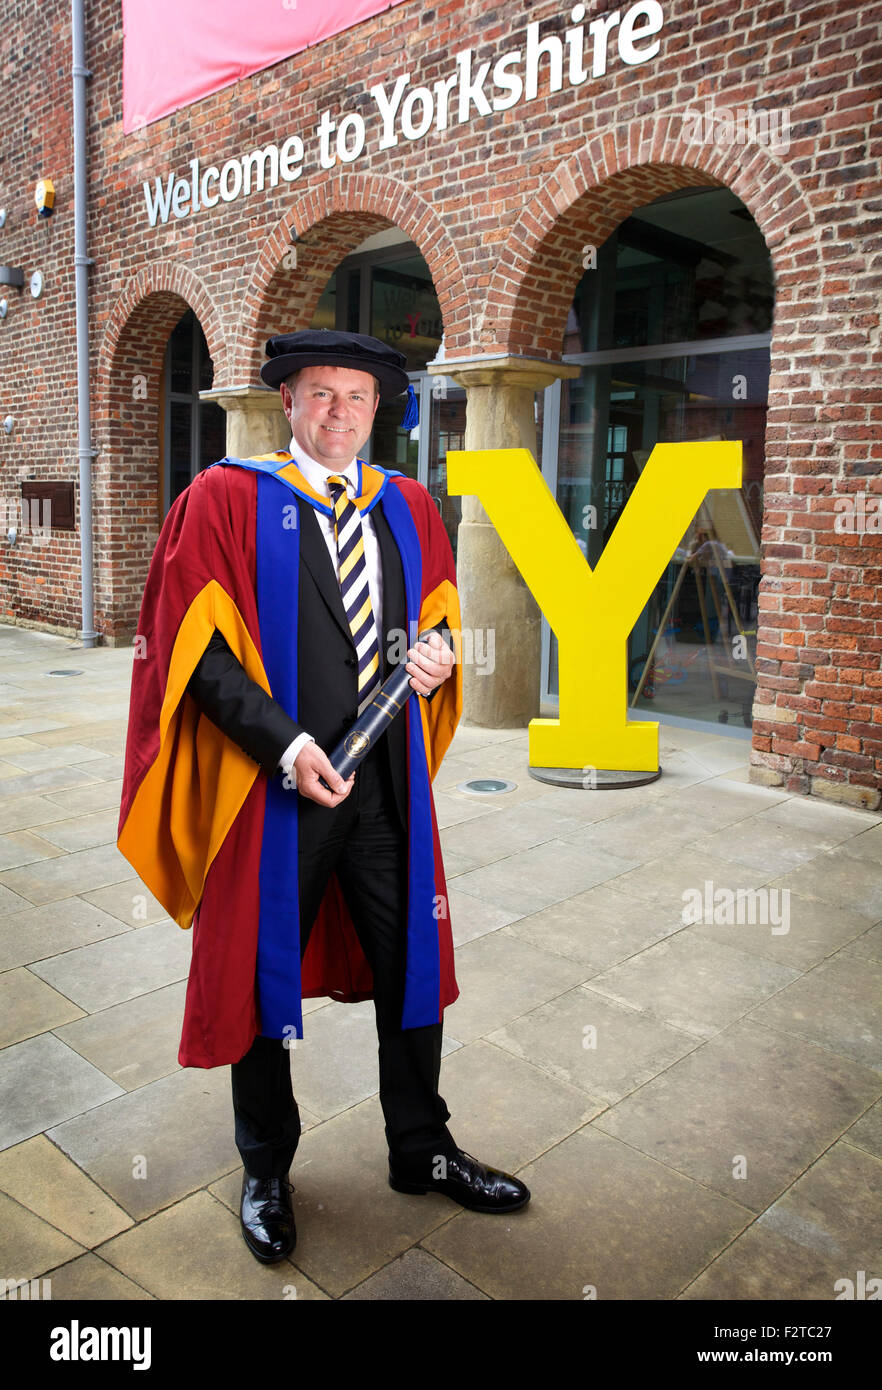 Sir Gary Verity with his Honorary Doctorate in Business Administration from Leeds Beckett University - Stock Image